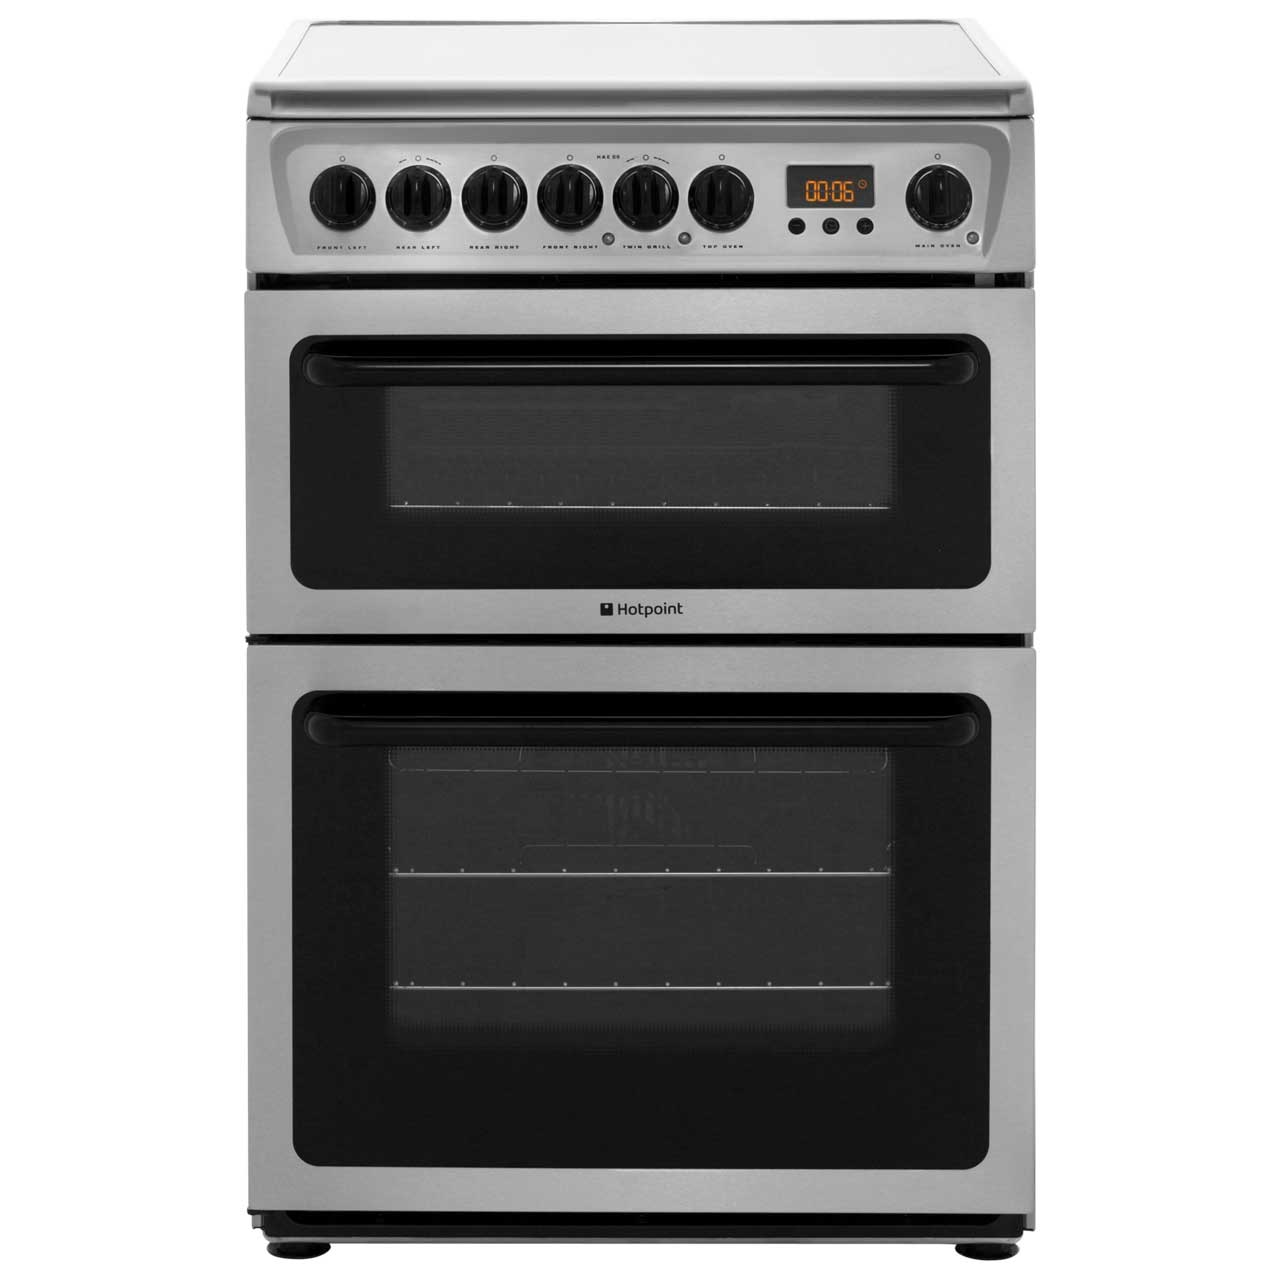 Hotpoint HAE60XS Electric Cooker with Ceramic Hob - Stainless Steel